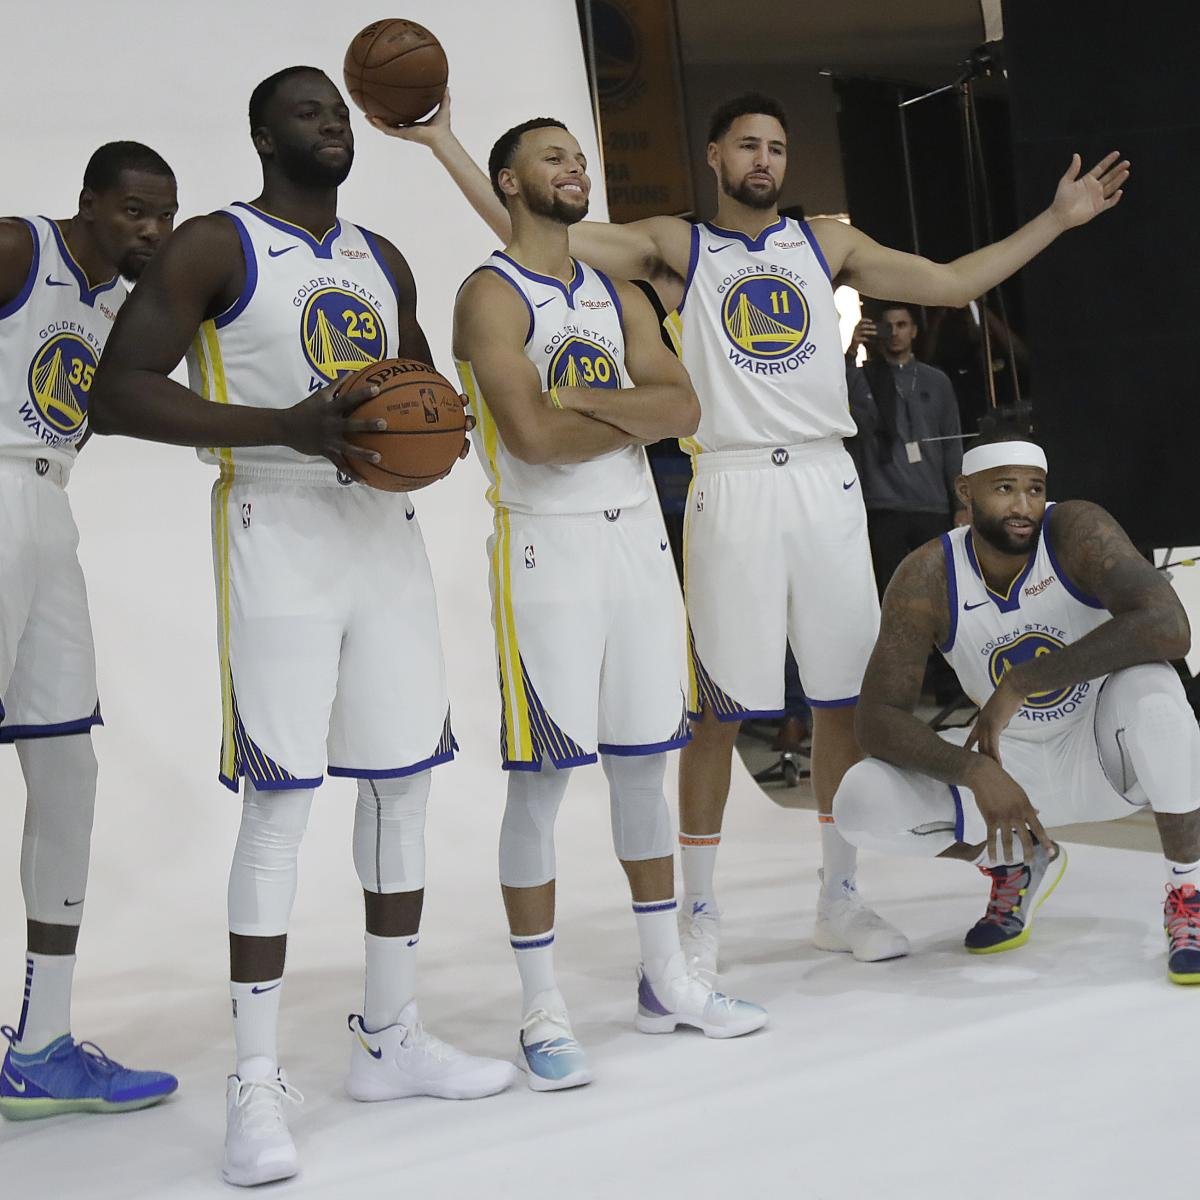 Warriors Movie Clips: Warriors Media Day 2018: Stephen Curry, DeMarcus Cousins